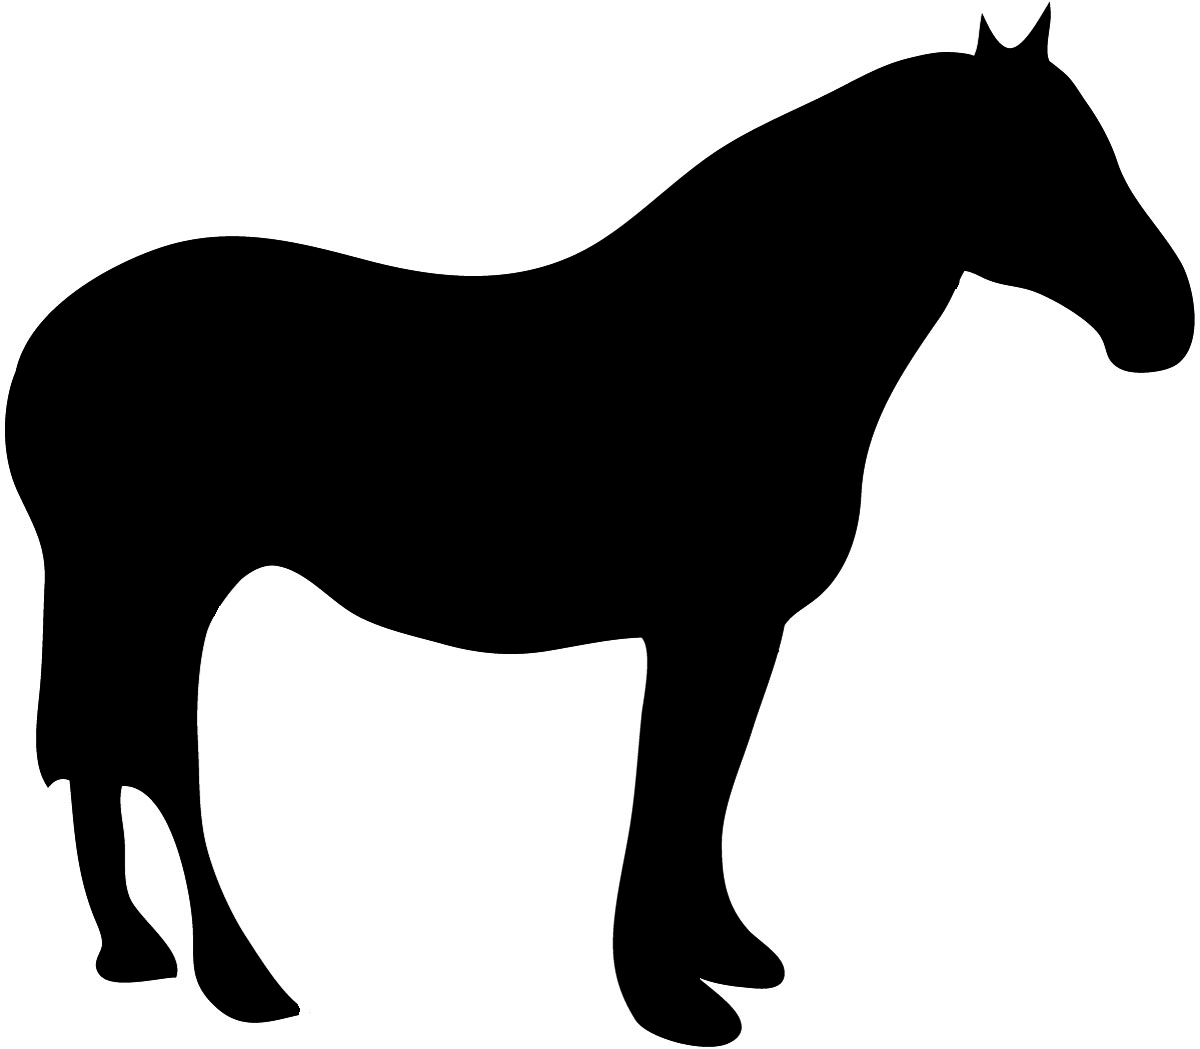 Free Simple Animal Silhouettes, Download Free Clip Art, Free.